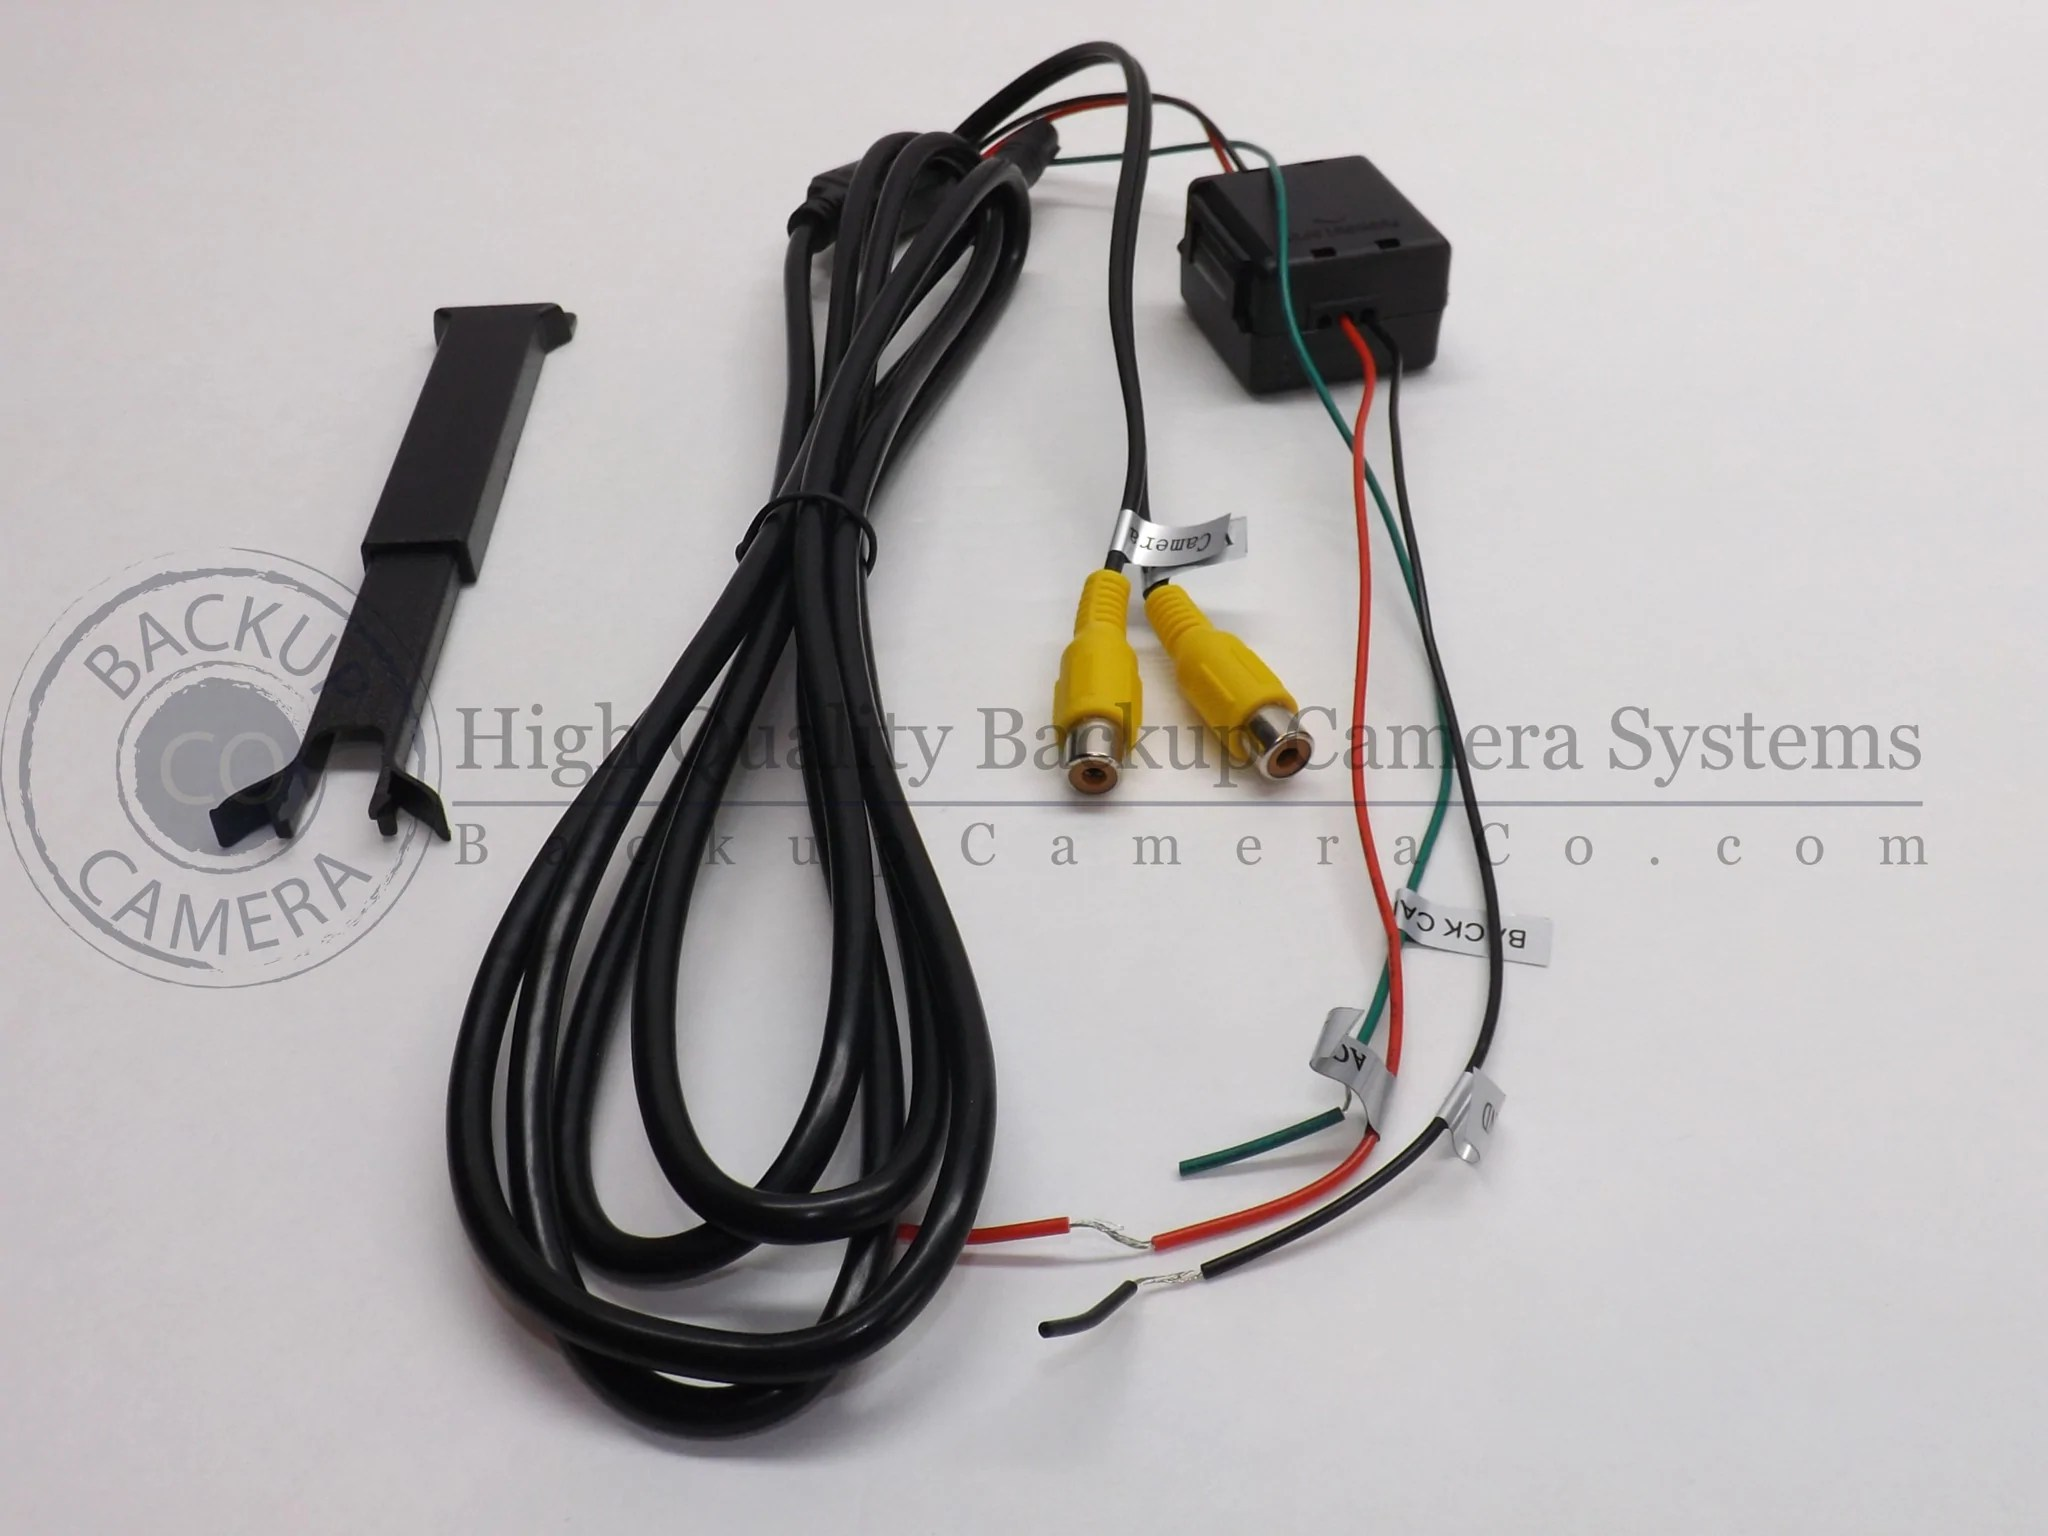 small resolution of auto dimming oem replacement rear view mirror with 4 3 lcd display for back up camera